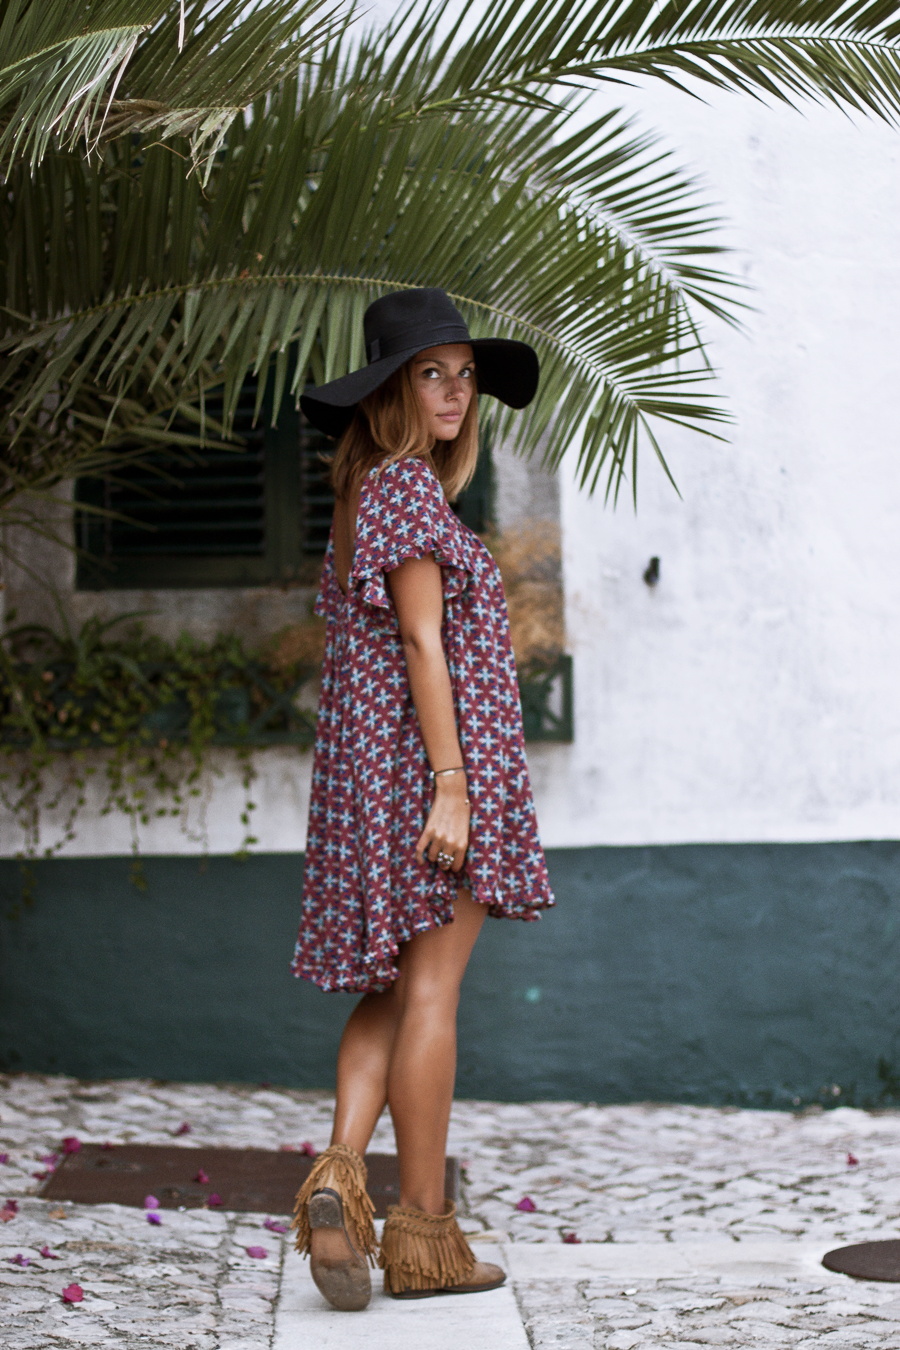 Mafalda Castro is wearing cute boho midi dress with fringed leather ankle boots and a wide brimmed hat. Dress: Mary G World, Boots: Zara.